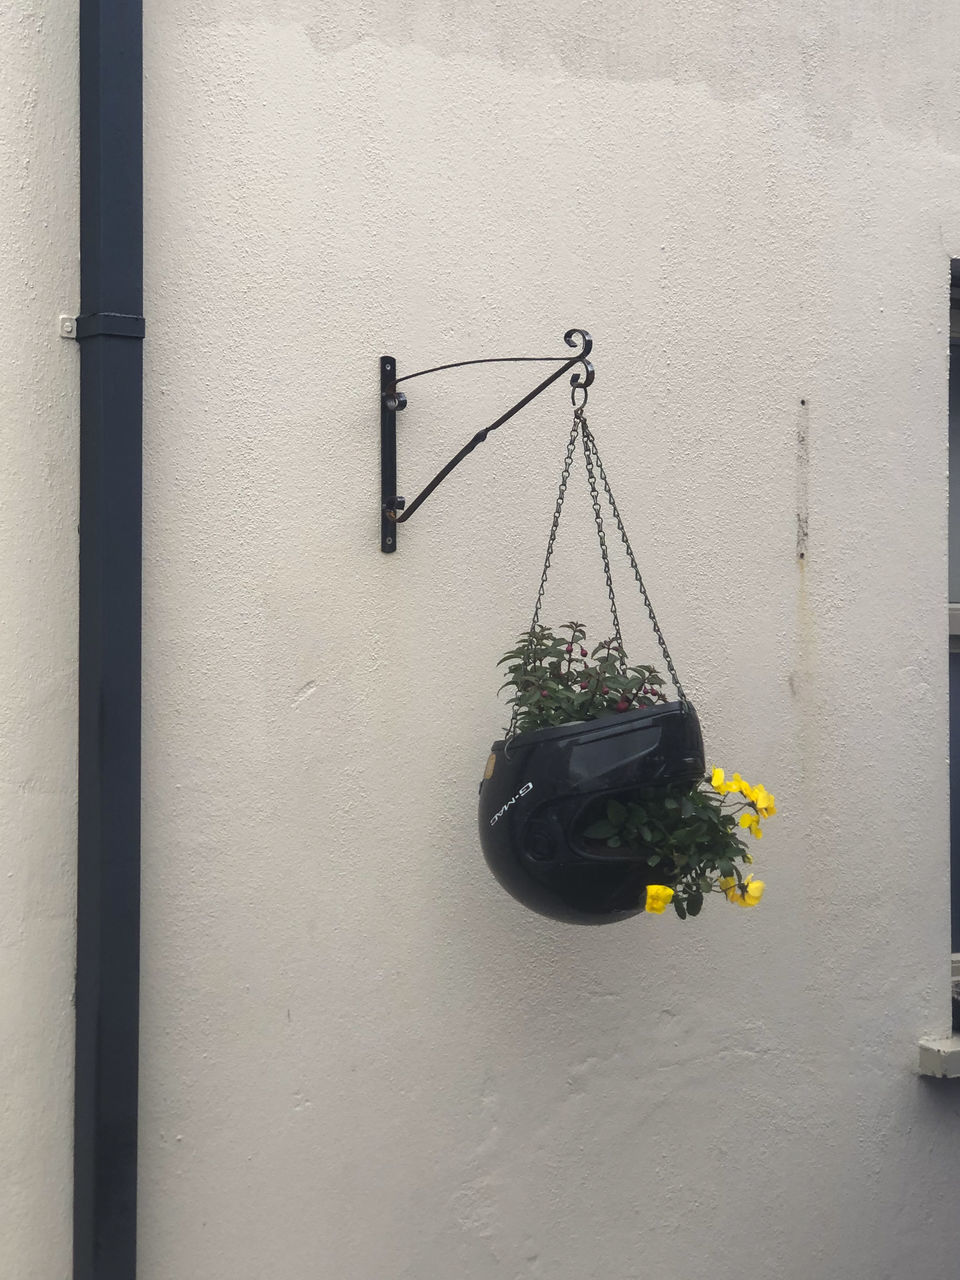 CLOSE-UP OF POTTED PLANT HANGING AGAINST WALL